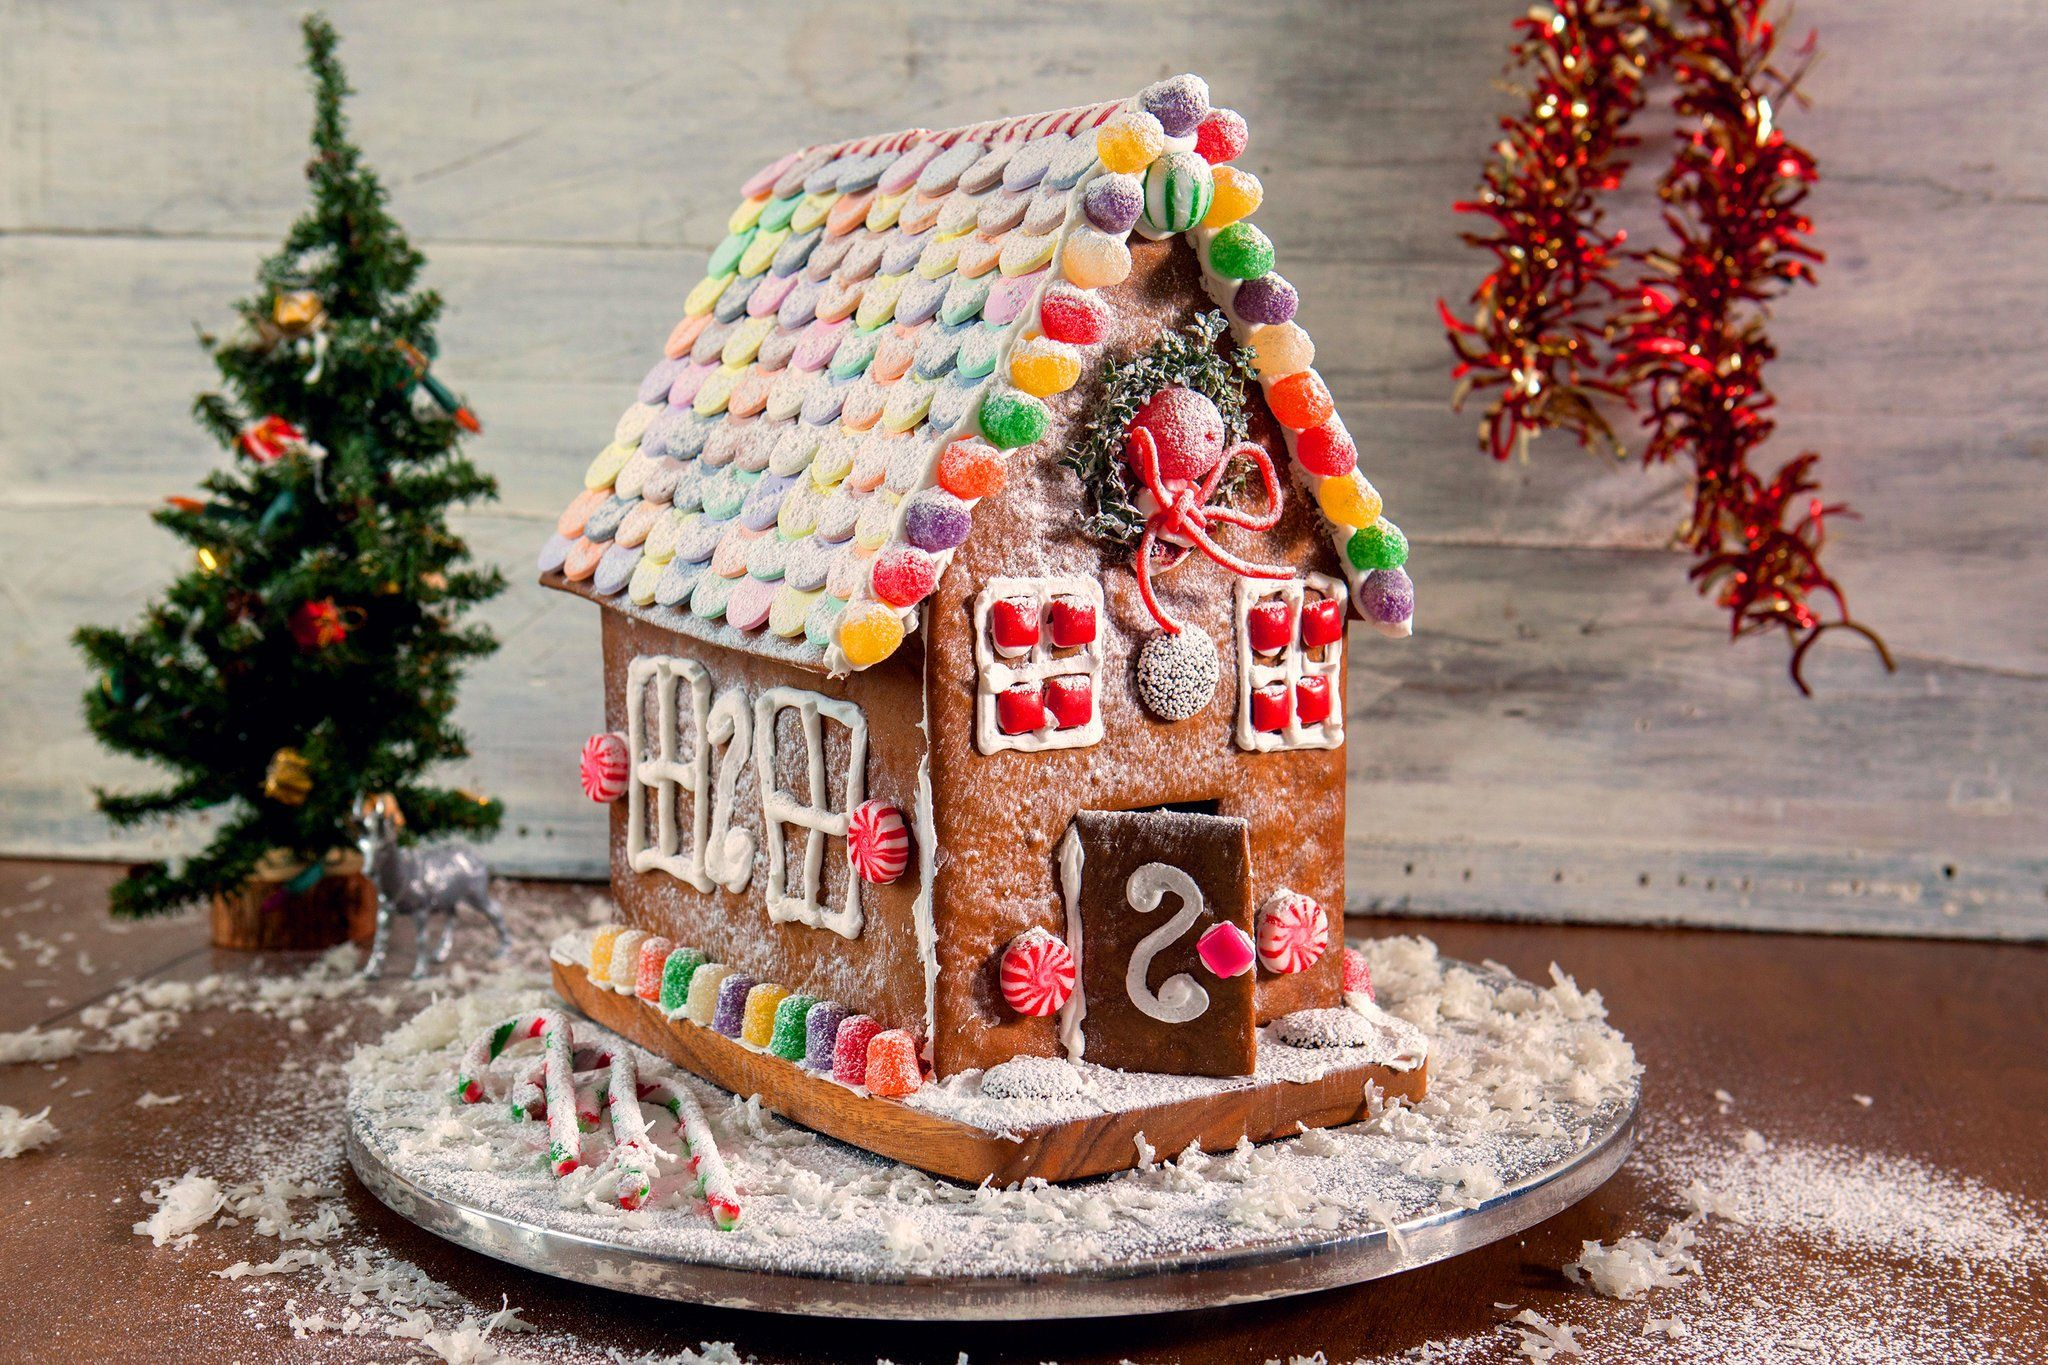 Here Is All You Need To Know To Build A Gingerbread House A Delicious Recipe Instructions For Assembly Gingerbread House Recipe Gingerbread House Gingerbread